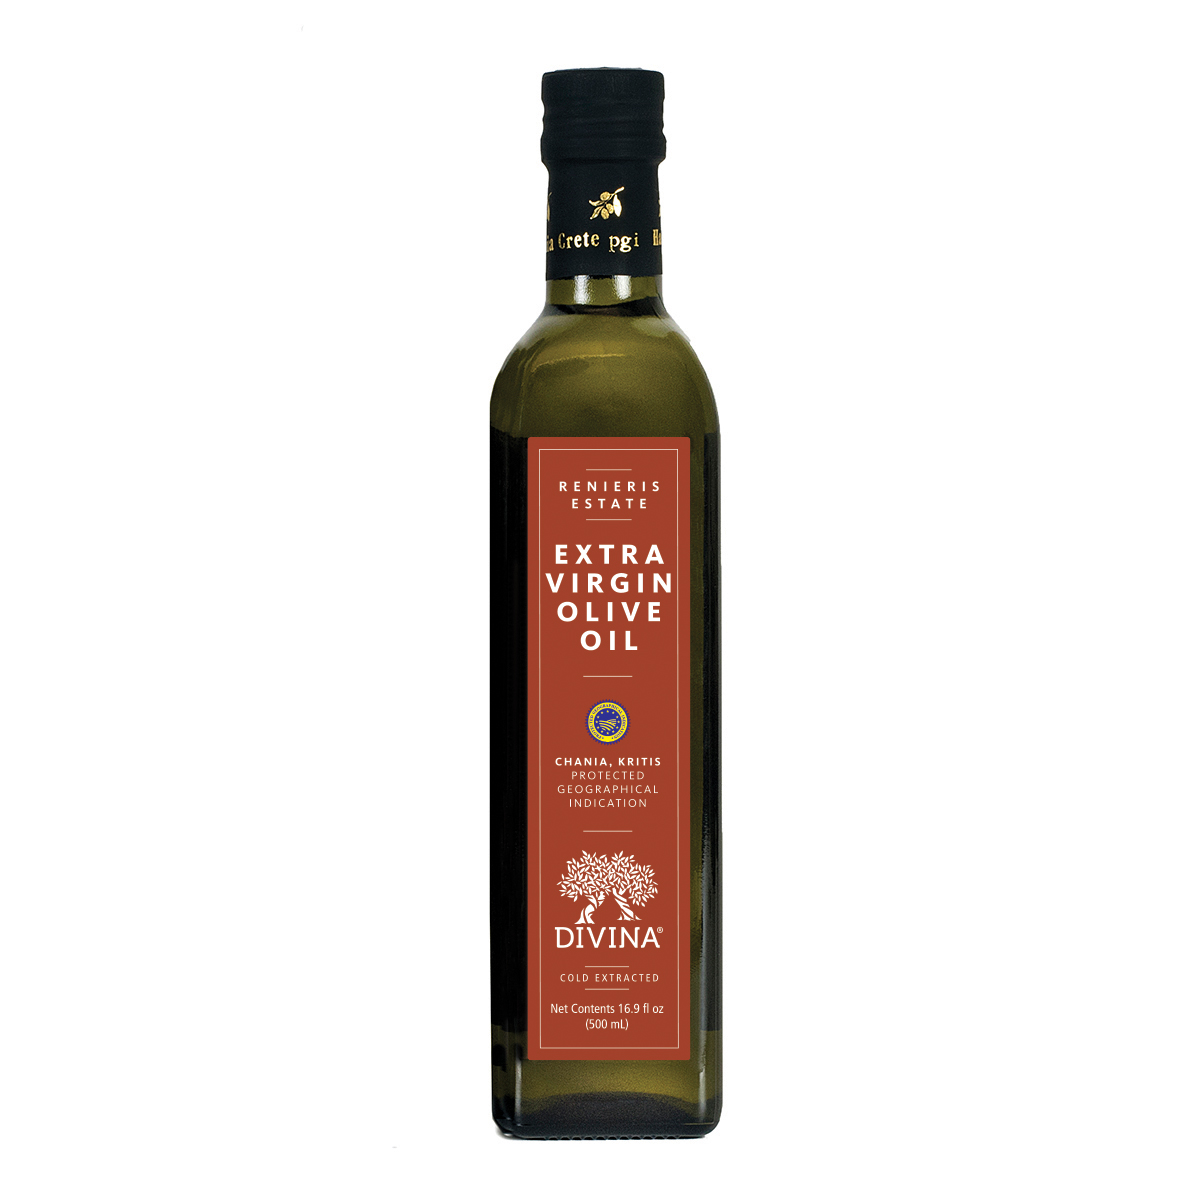 00160 - Renieris Estate Extra Virgin Olive Oil